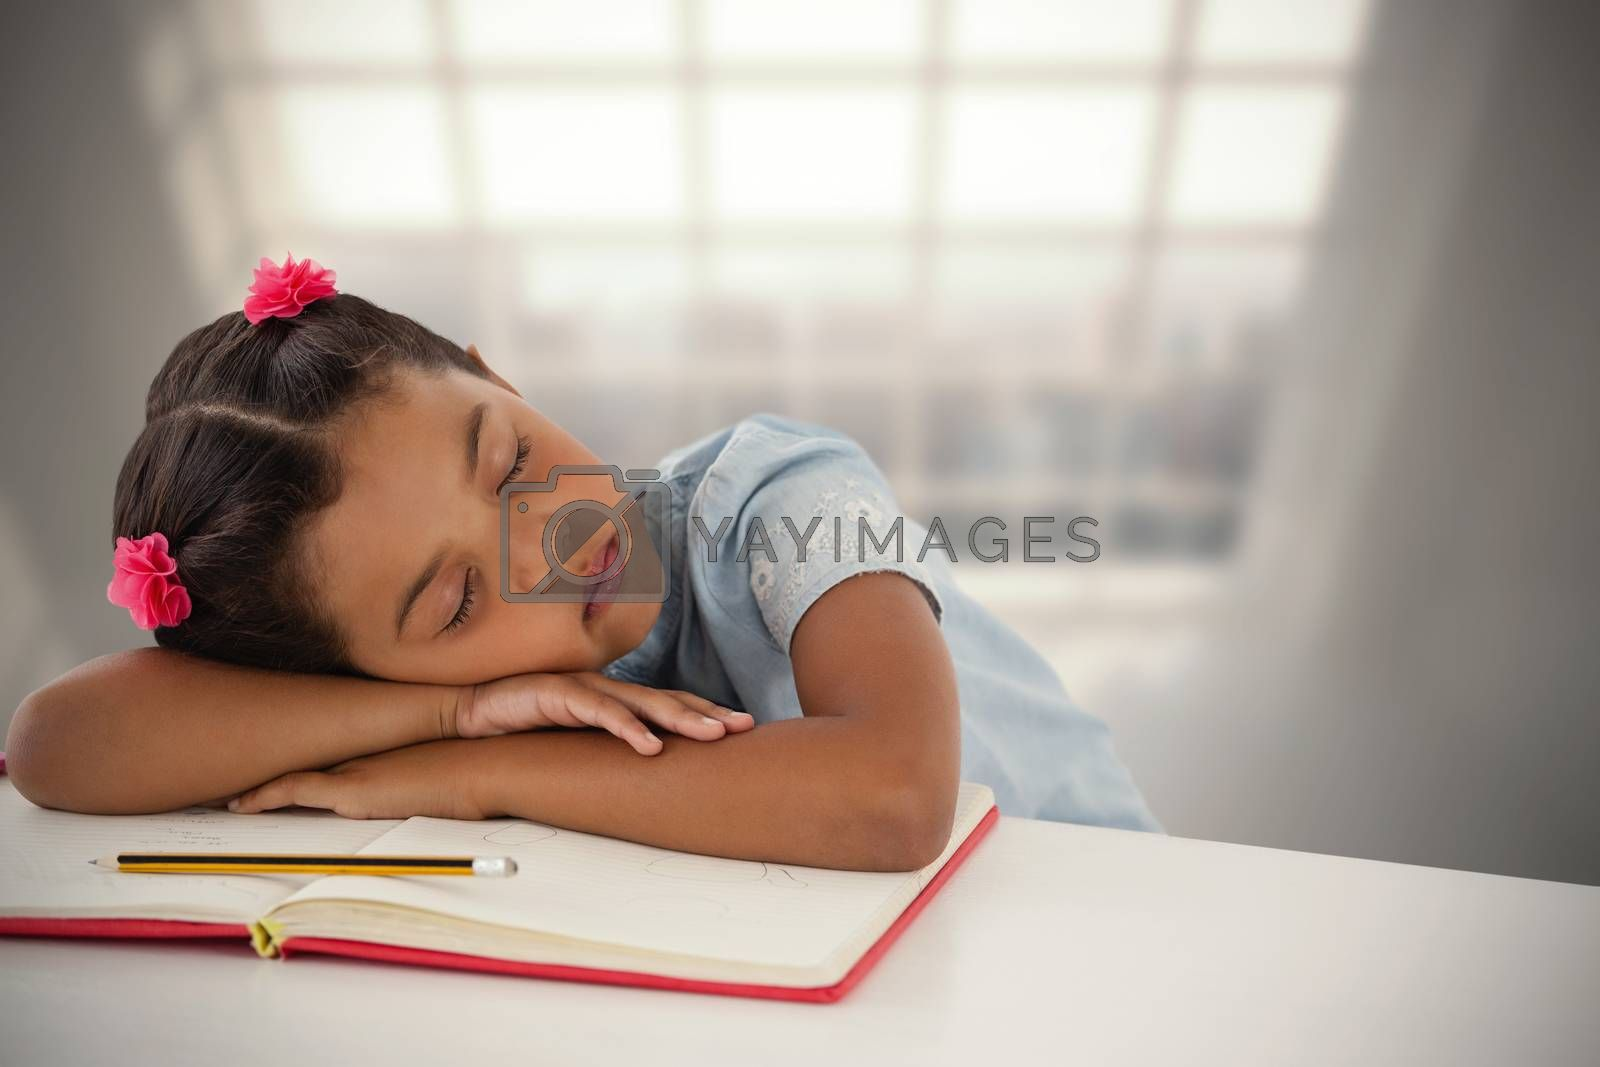 Composite image of girl napping on book at desk by Wavebreakmedia